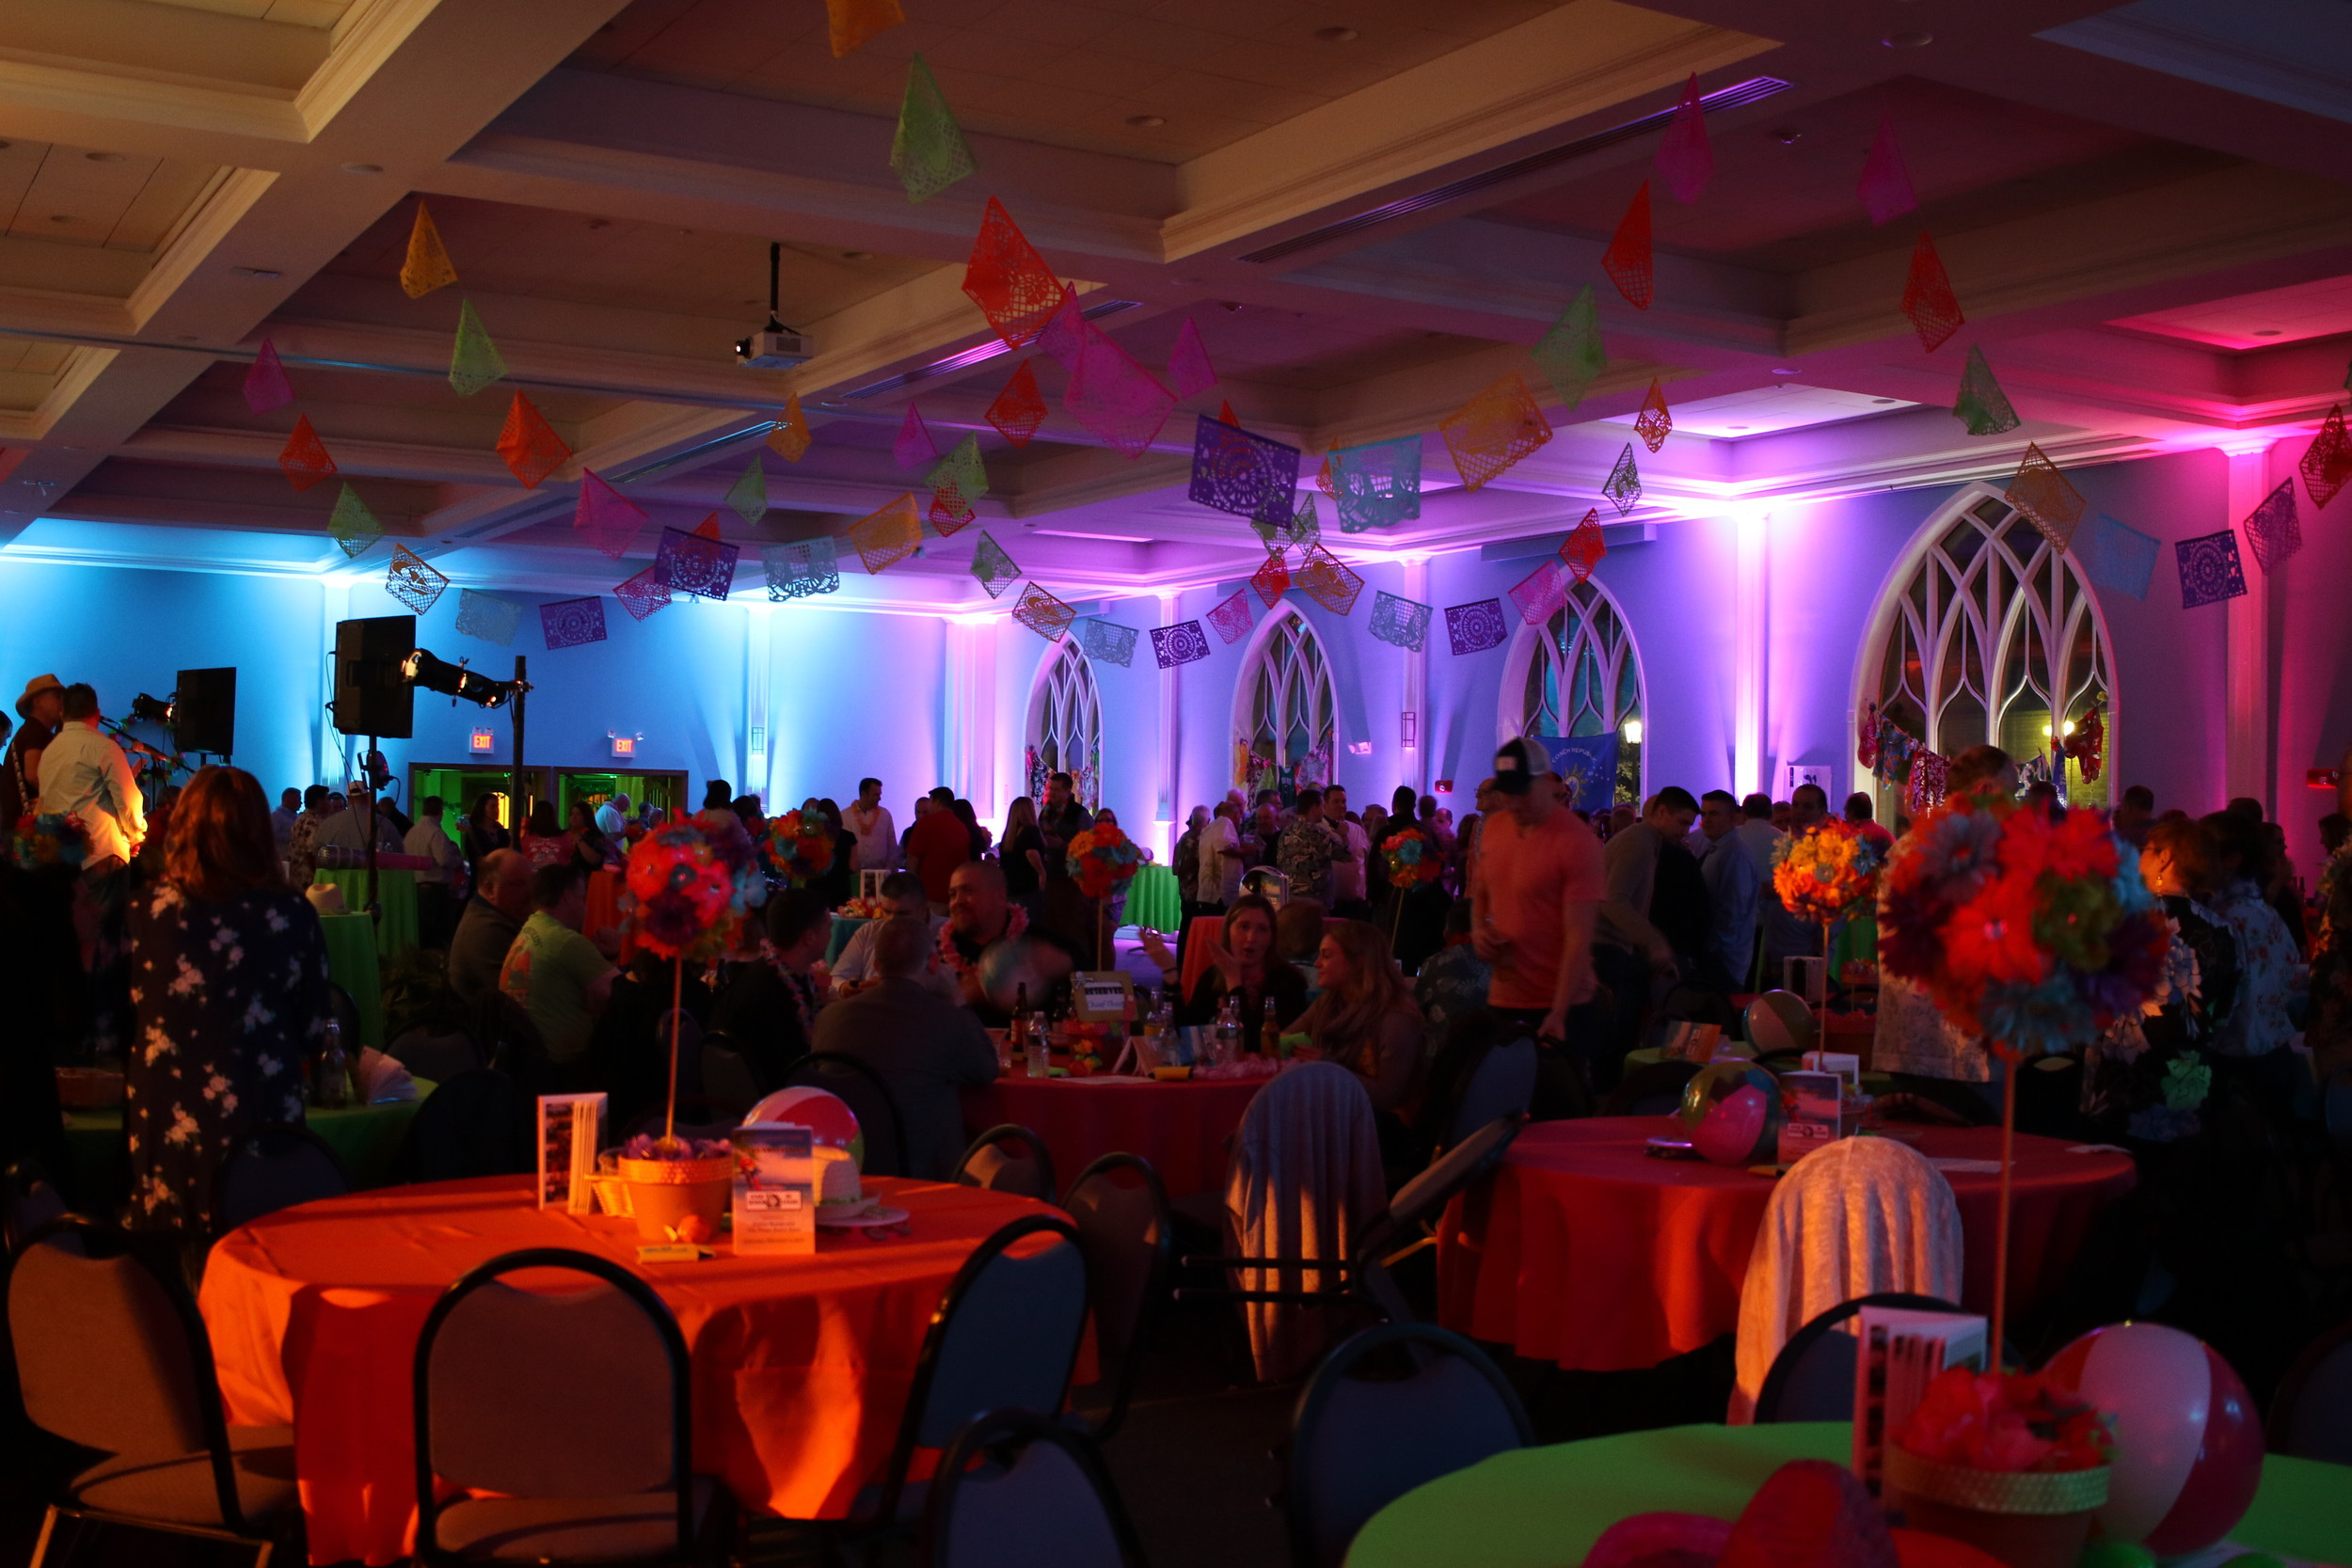 Margaritaville was another great success. This years honorees the Over 40 Senior League were treated to a night of music, fun, dancing, raffles and more at the St. Agnes Parish Center.